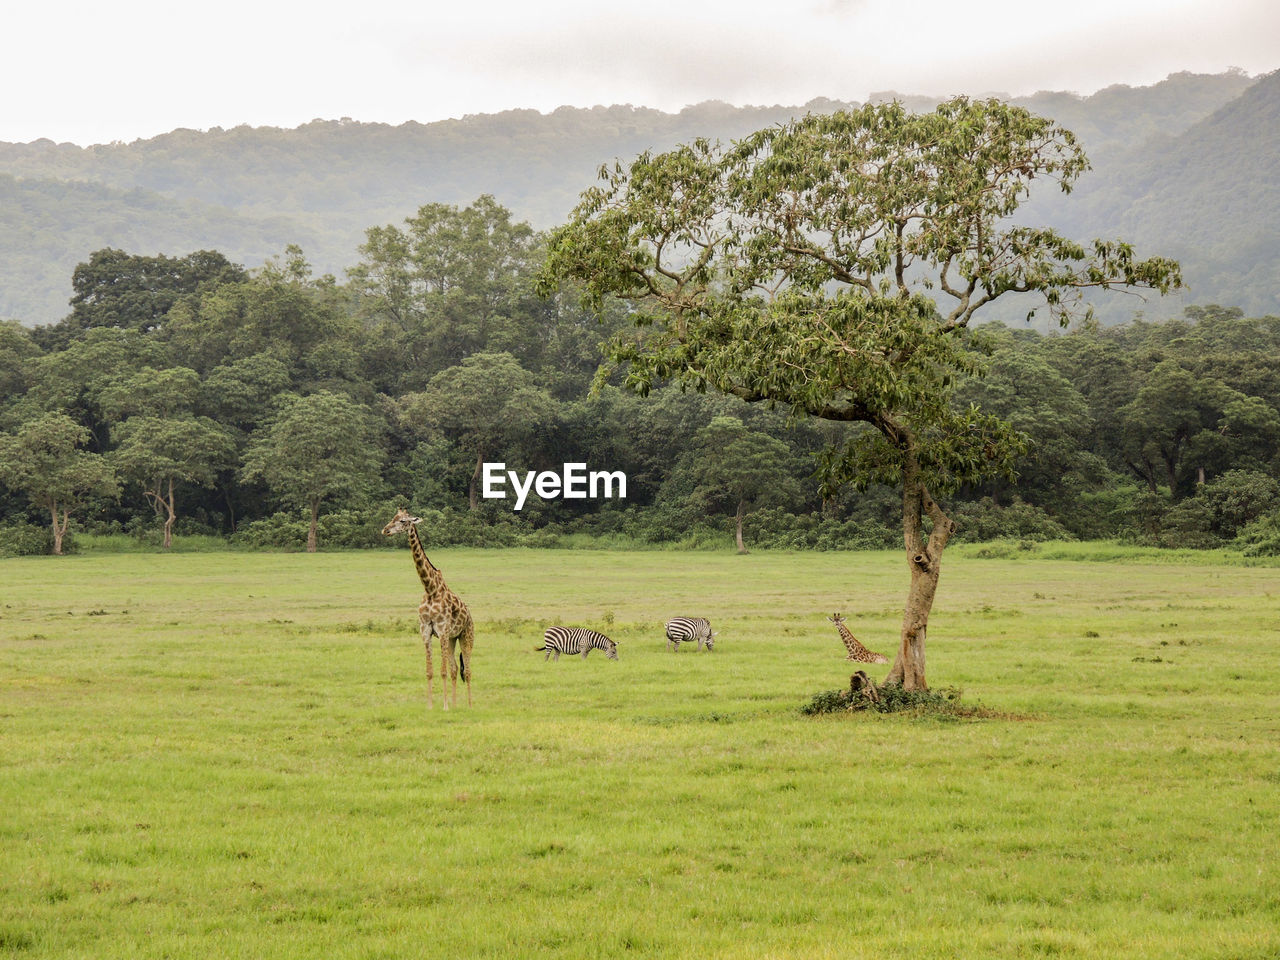 plant, tree, animal, animal themes, mammal, grass, green color, landscape, environment, land, nature, day, field, animal wildlife, vertebrate, domestic animals, livestock, no people, group of animals, beauty in nature, outdoors, herbivorous